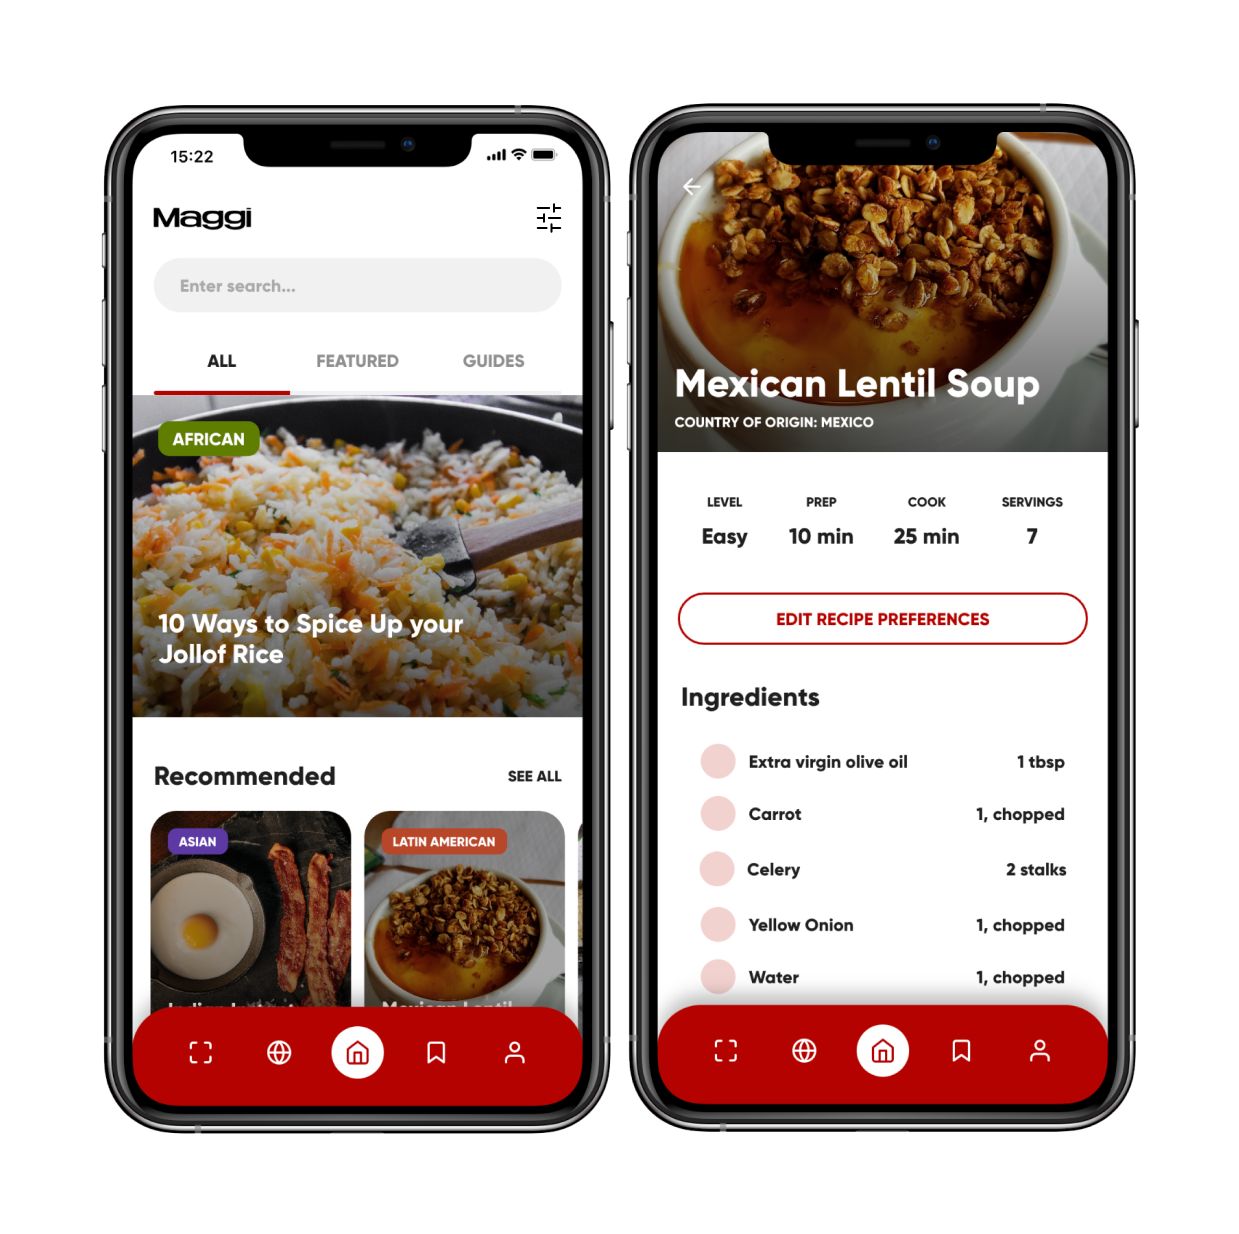 Picture of two iPhone screens showing a food recipe app